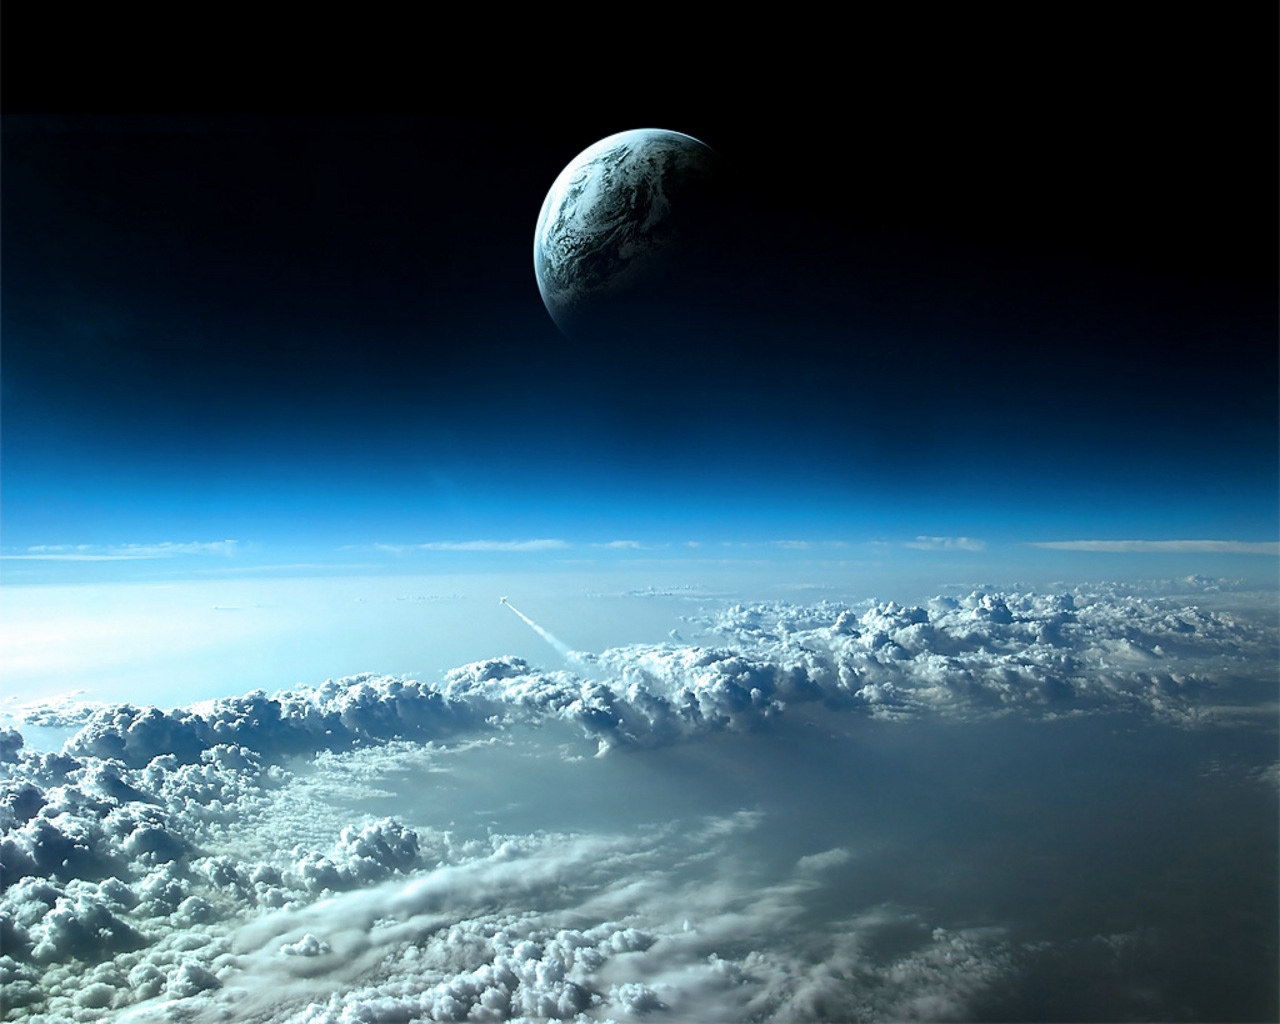 3D Space Scene Res: 1280x1024 / Size:274kb. Views: 479890